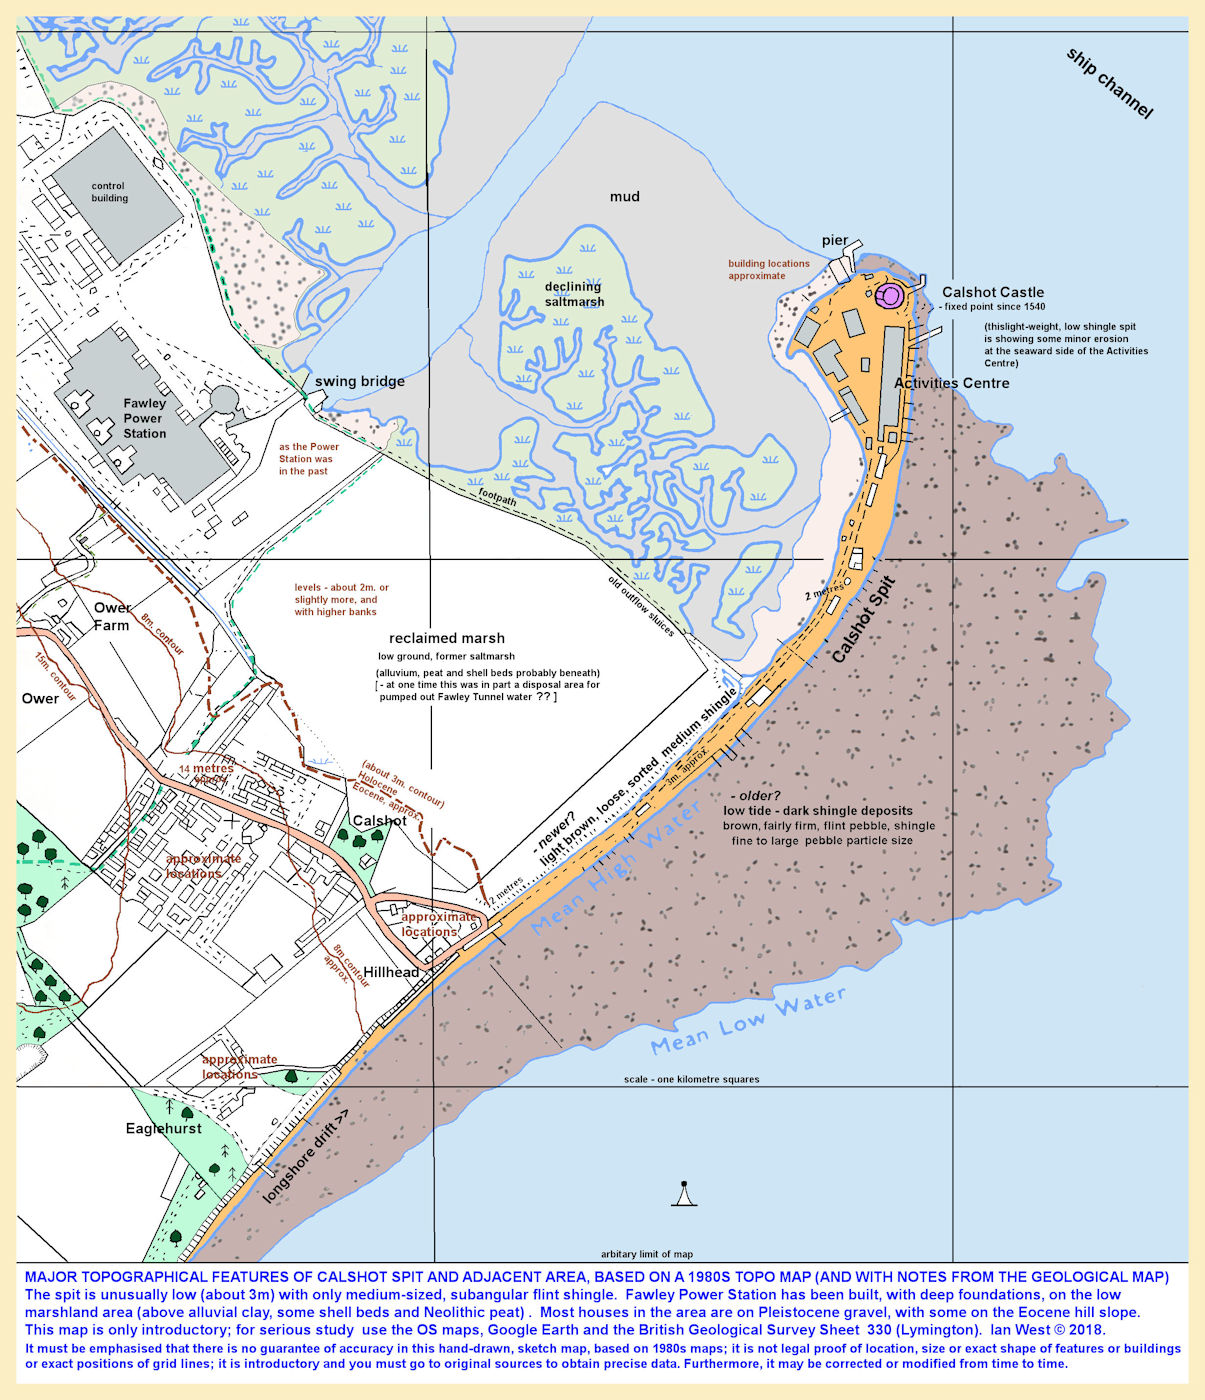 Introductory general topography of Calshot Spit and adjacent area as in the 1980s, completely redrawn with some additional notes, not for precise use or measurement, but just intended for general topographic and location purposes